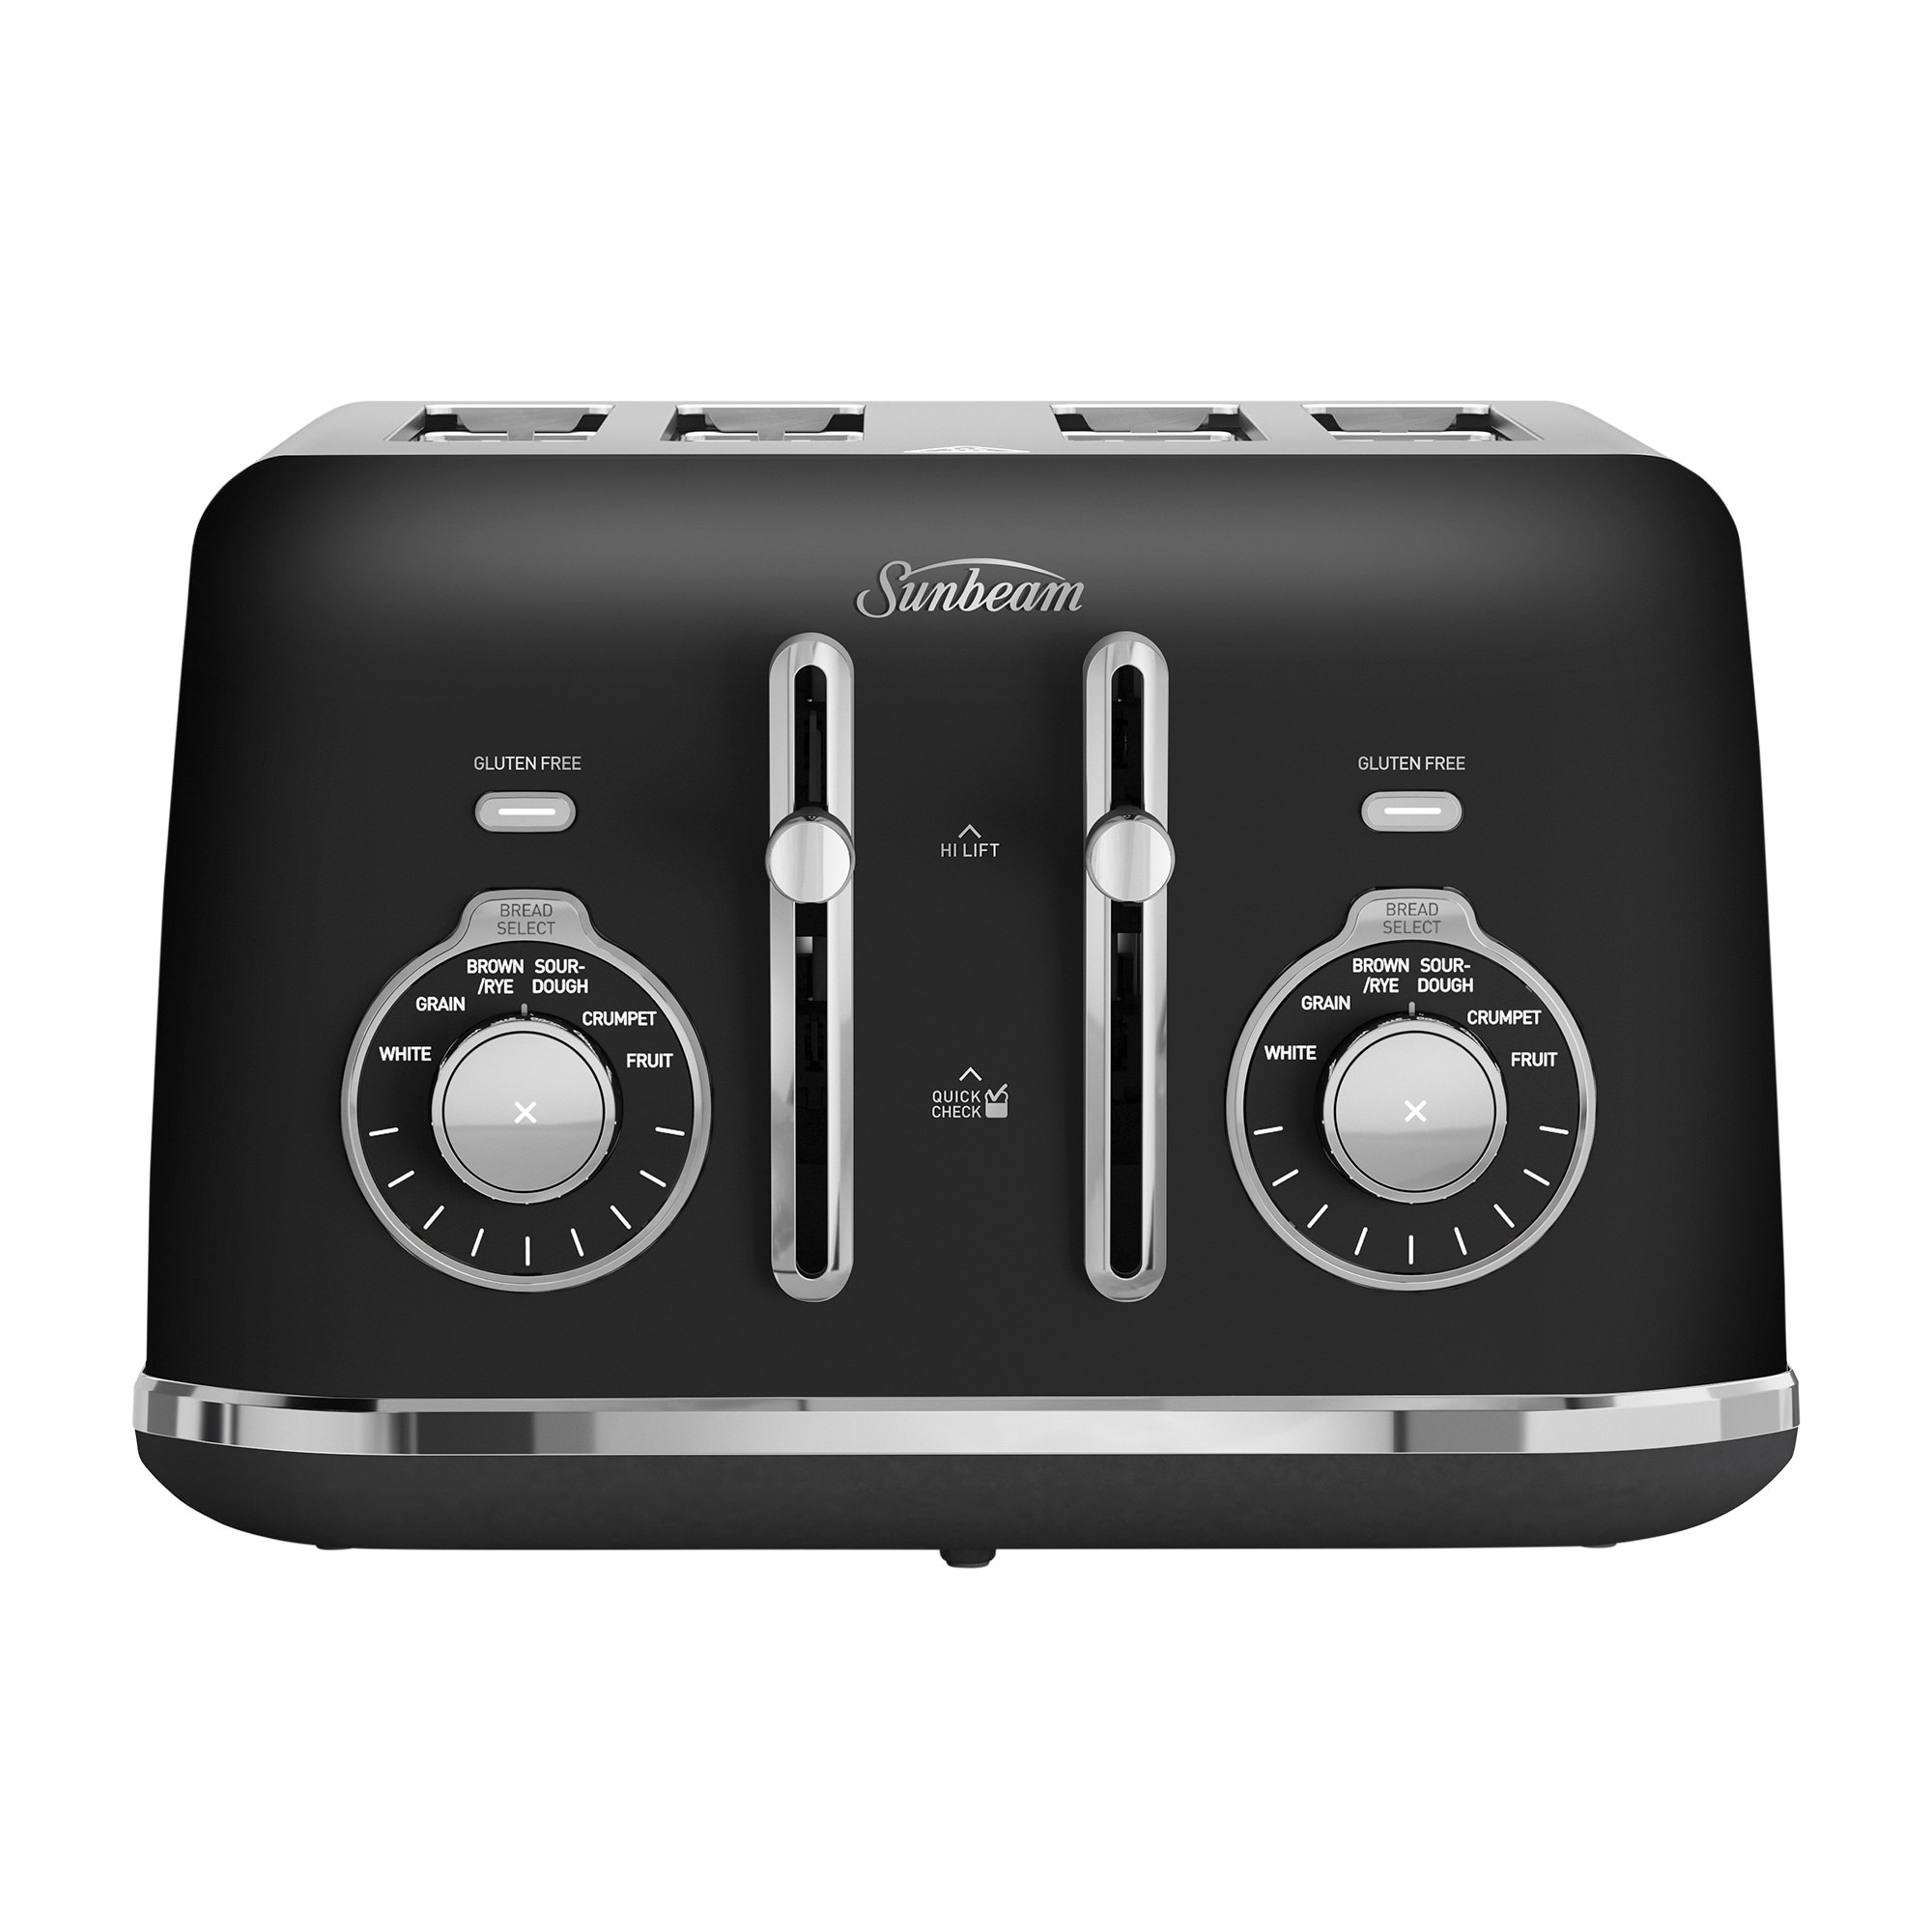 Sunbeam Alinea Select 4 Slice Toaster Dark Canyon Black